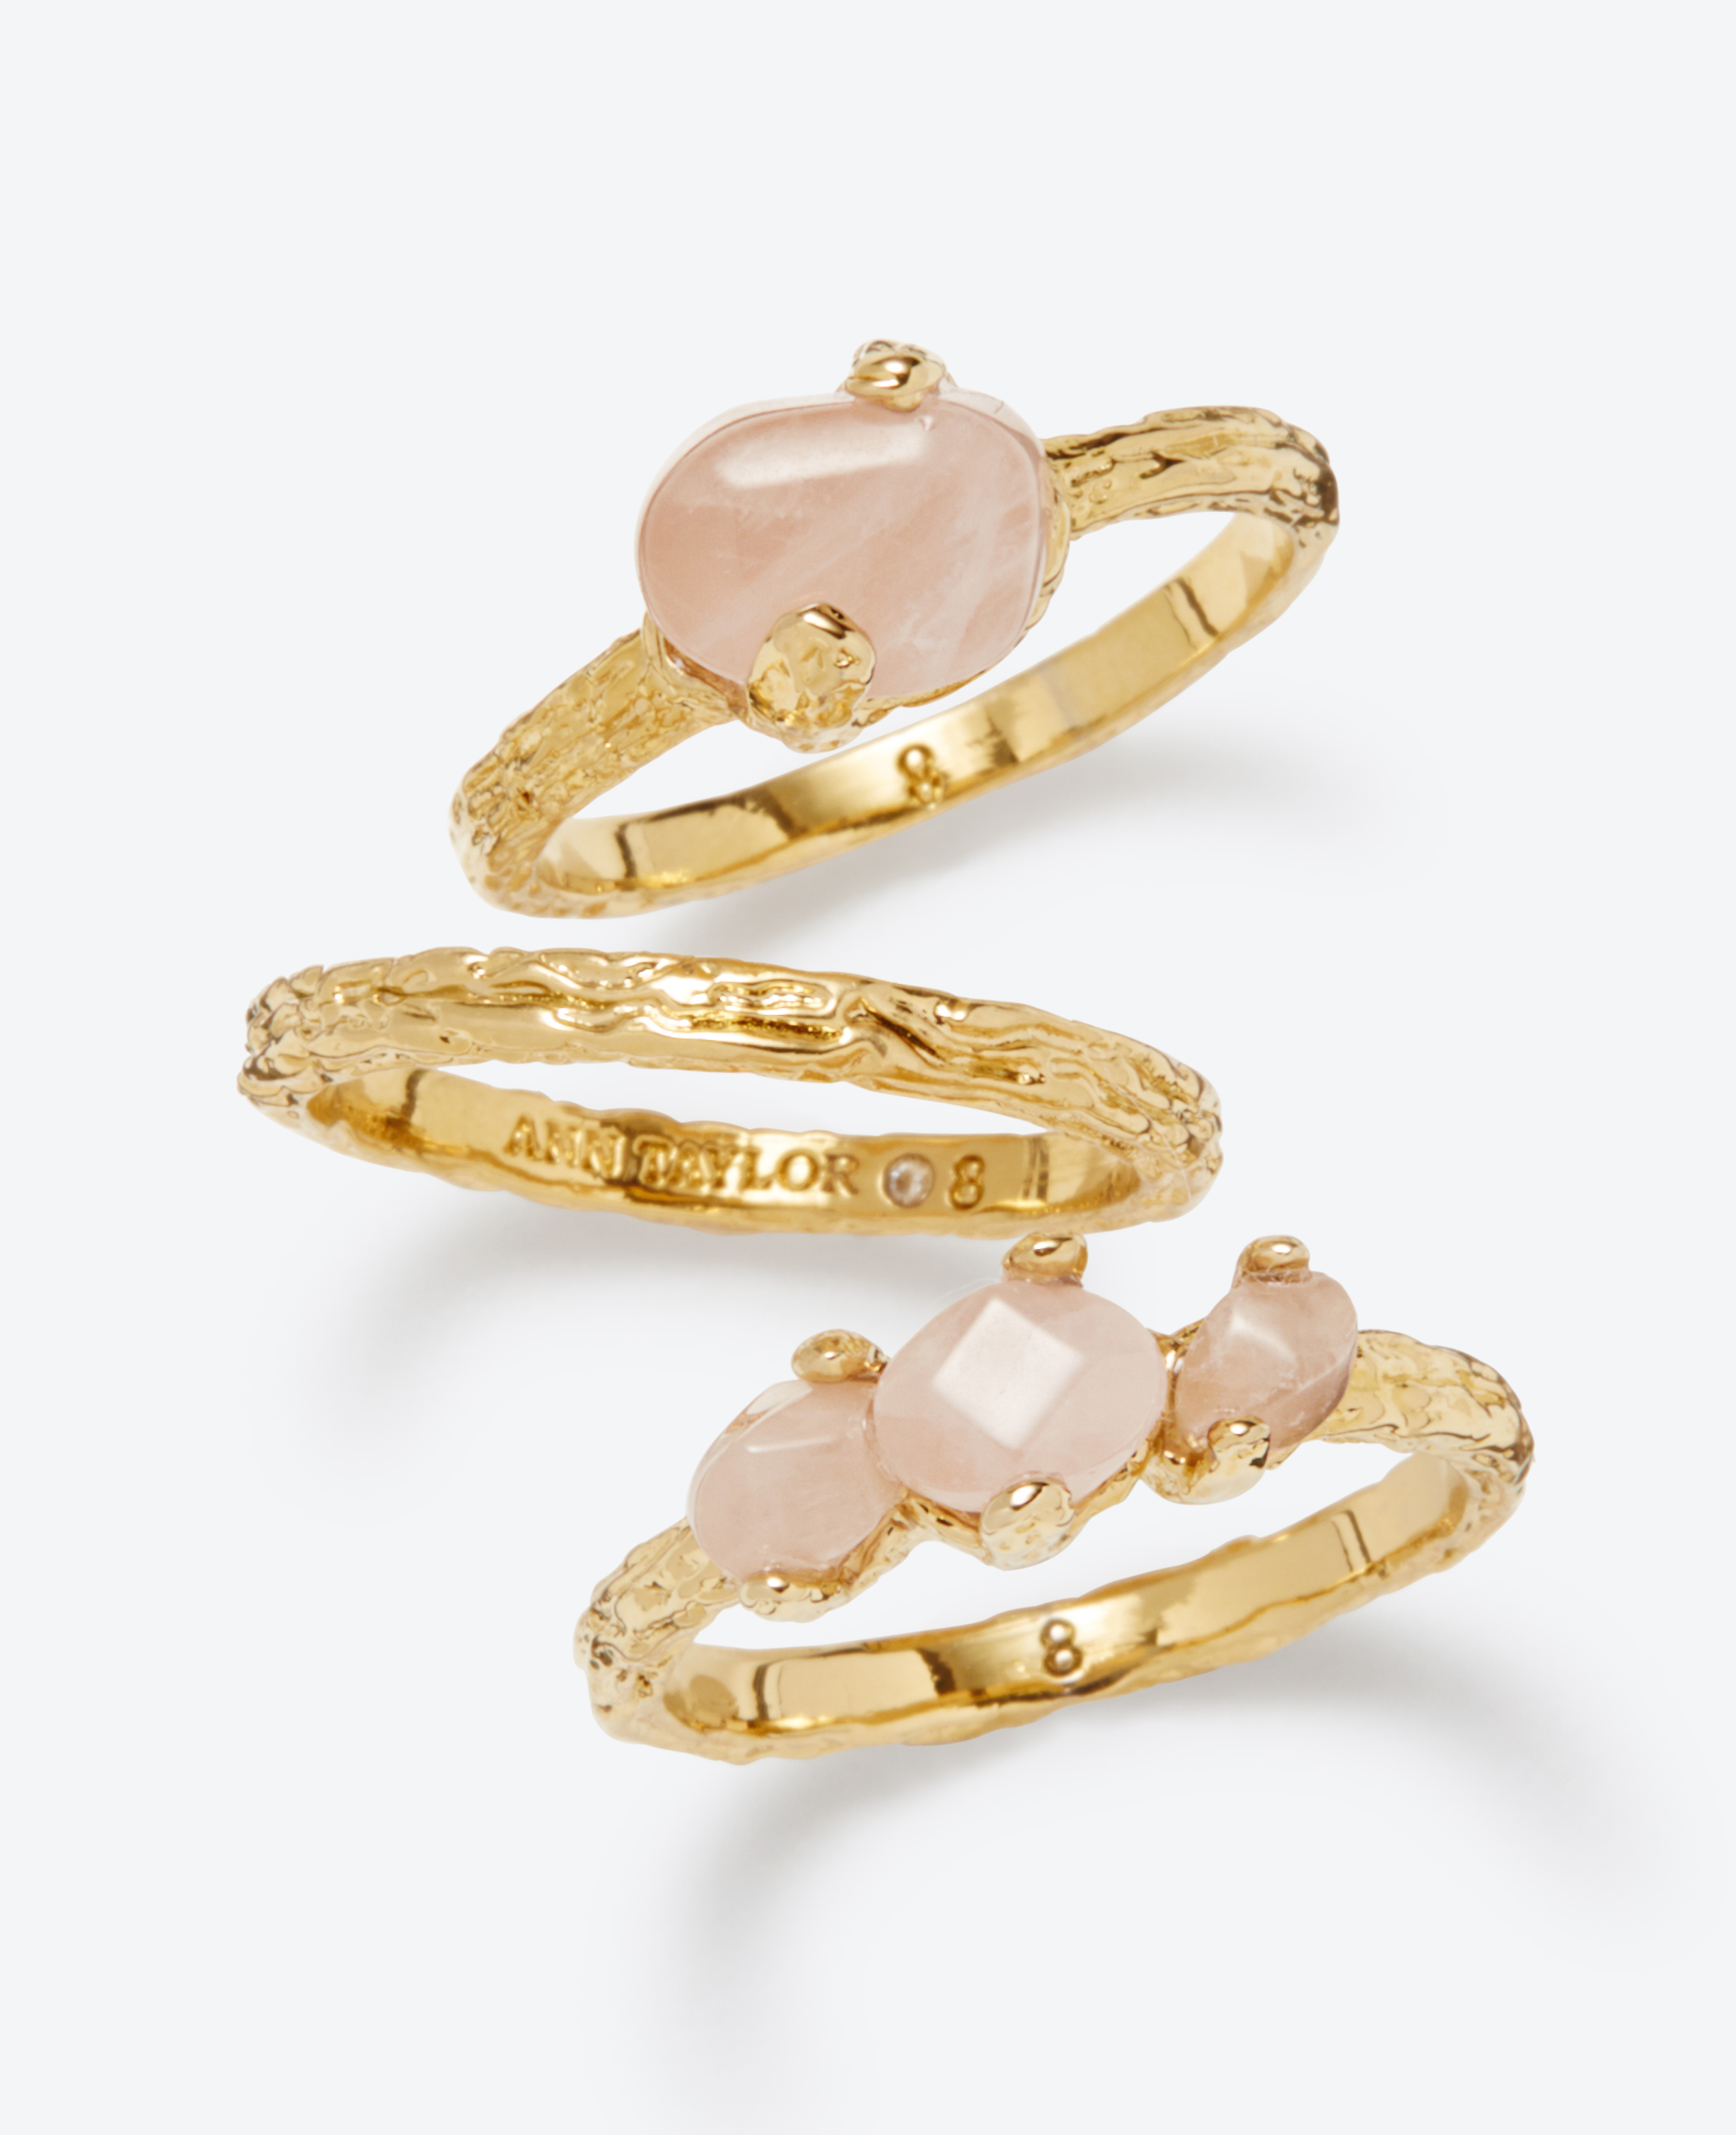 en couture collections pre and catelan dior small pink pr quartz in rings gb rose ring gold z model jewellery